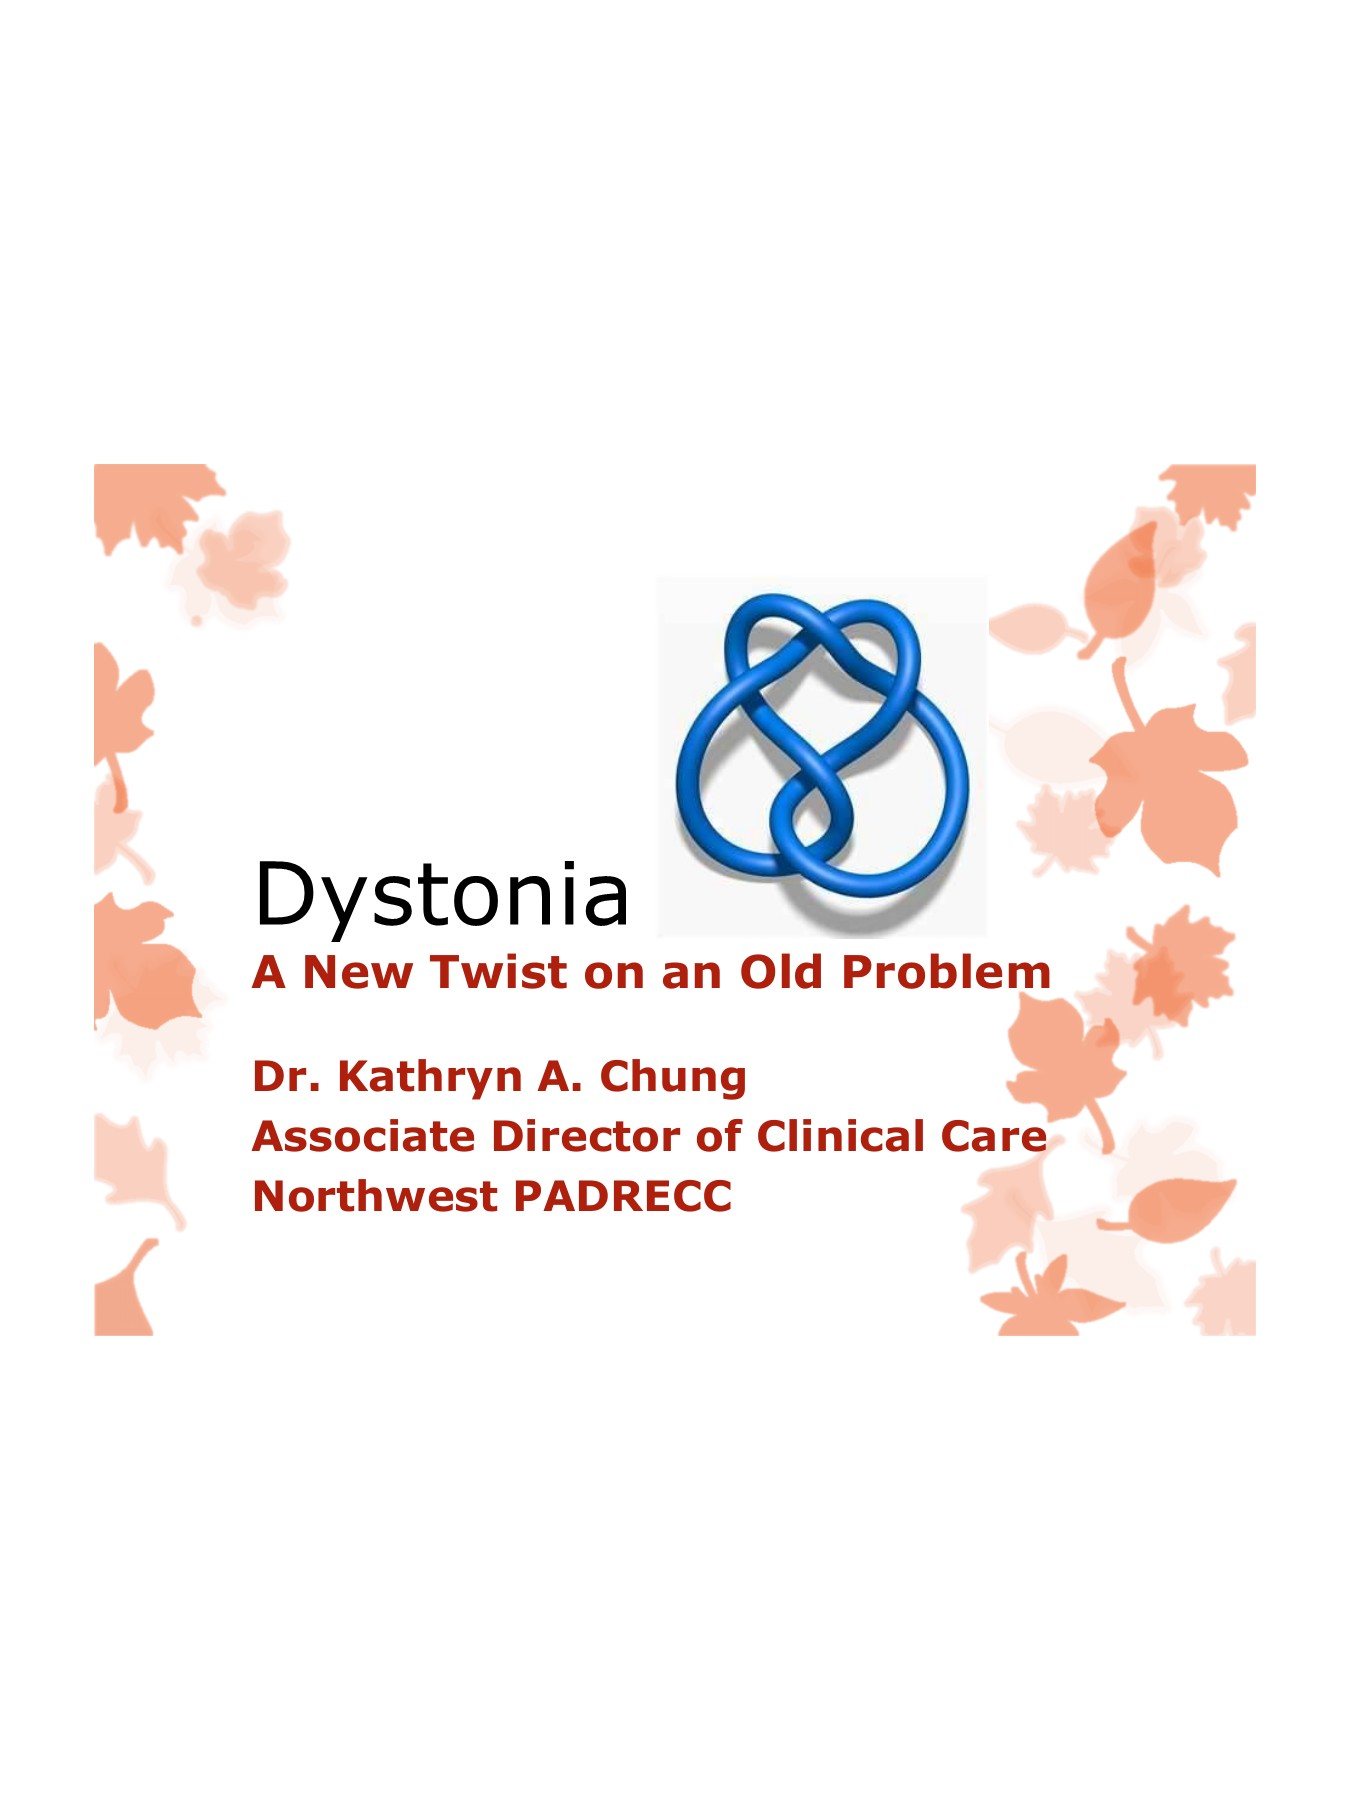 Dystonia - United States Department of Veterans Affairs Pages 1 - 20